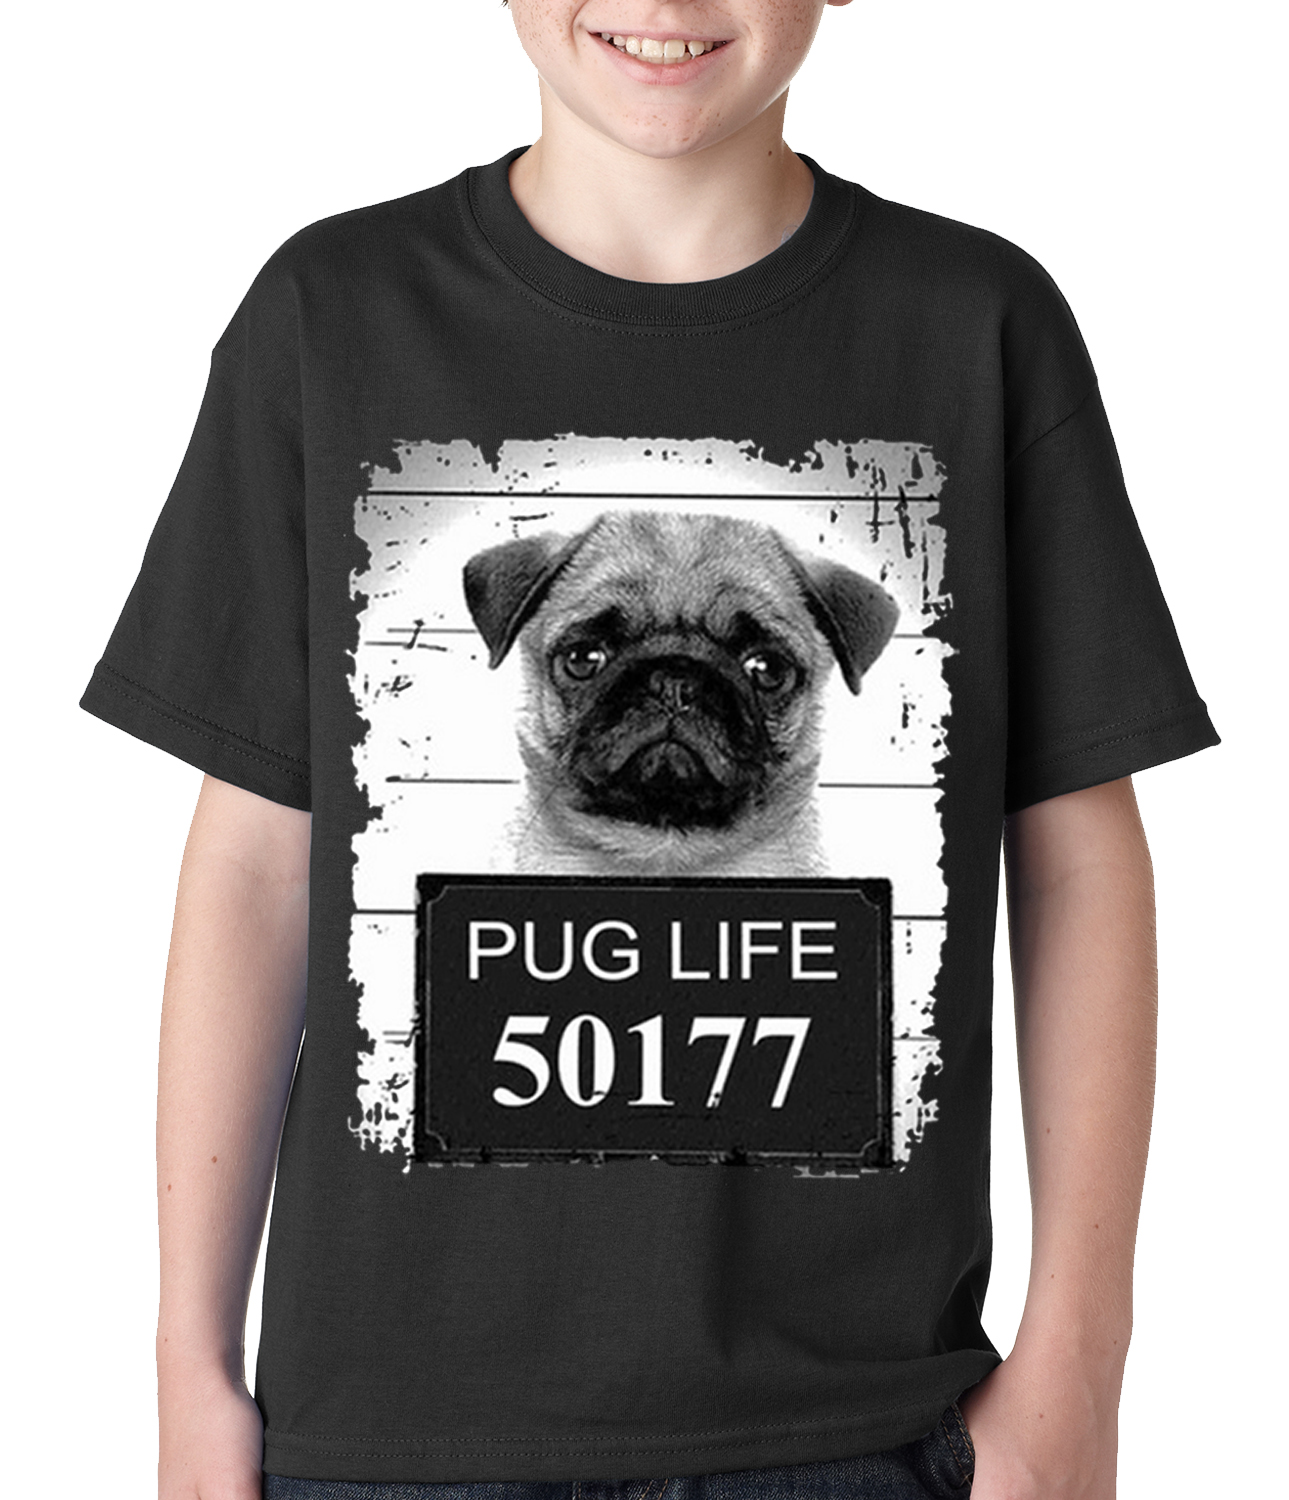 pug shirts for kids mug shot pug life funny kids t shirt 6982